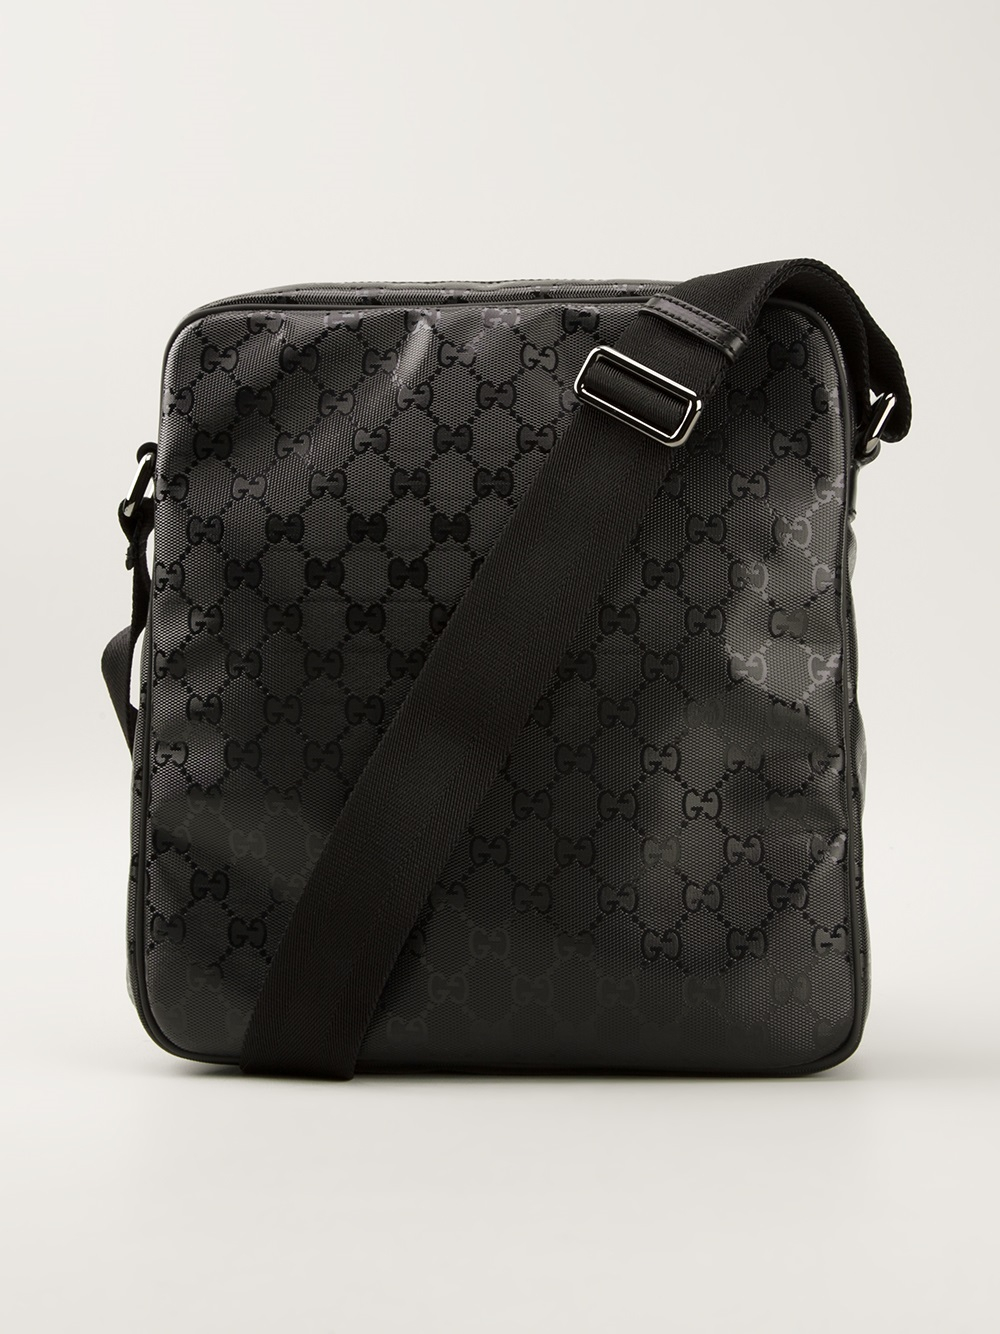 9e408ade24f1c8 Gucci Shoulder Bag Mens Black | Stanford Center for Opportunity ...